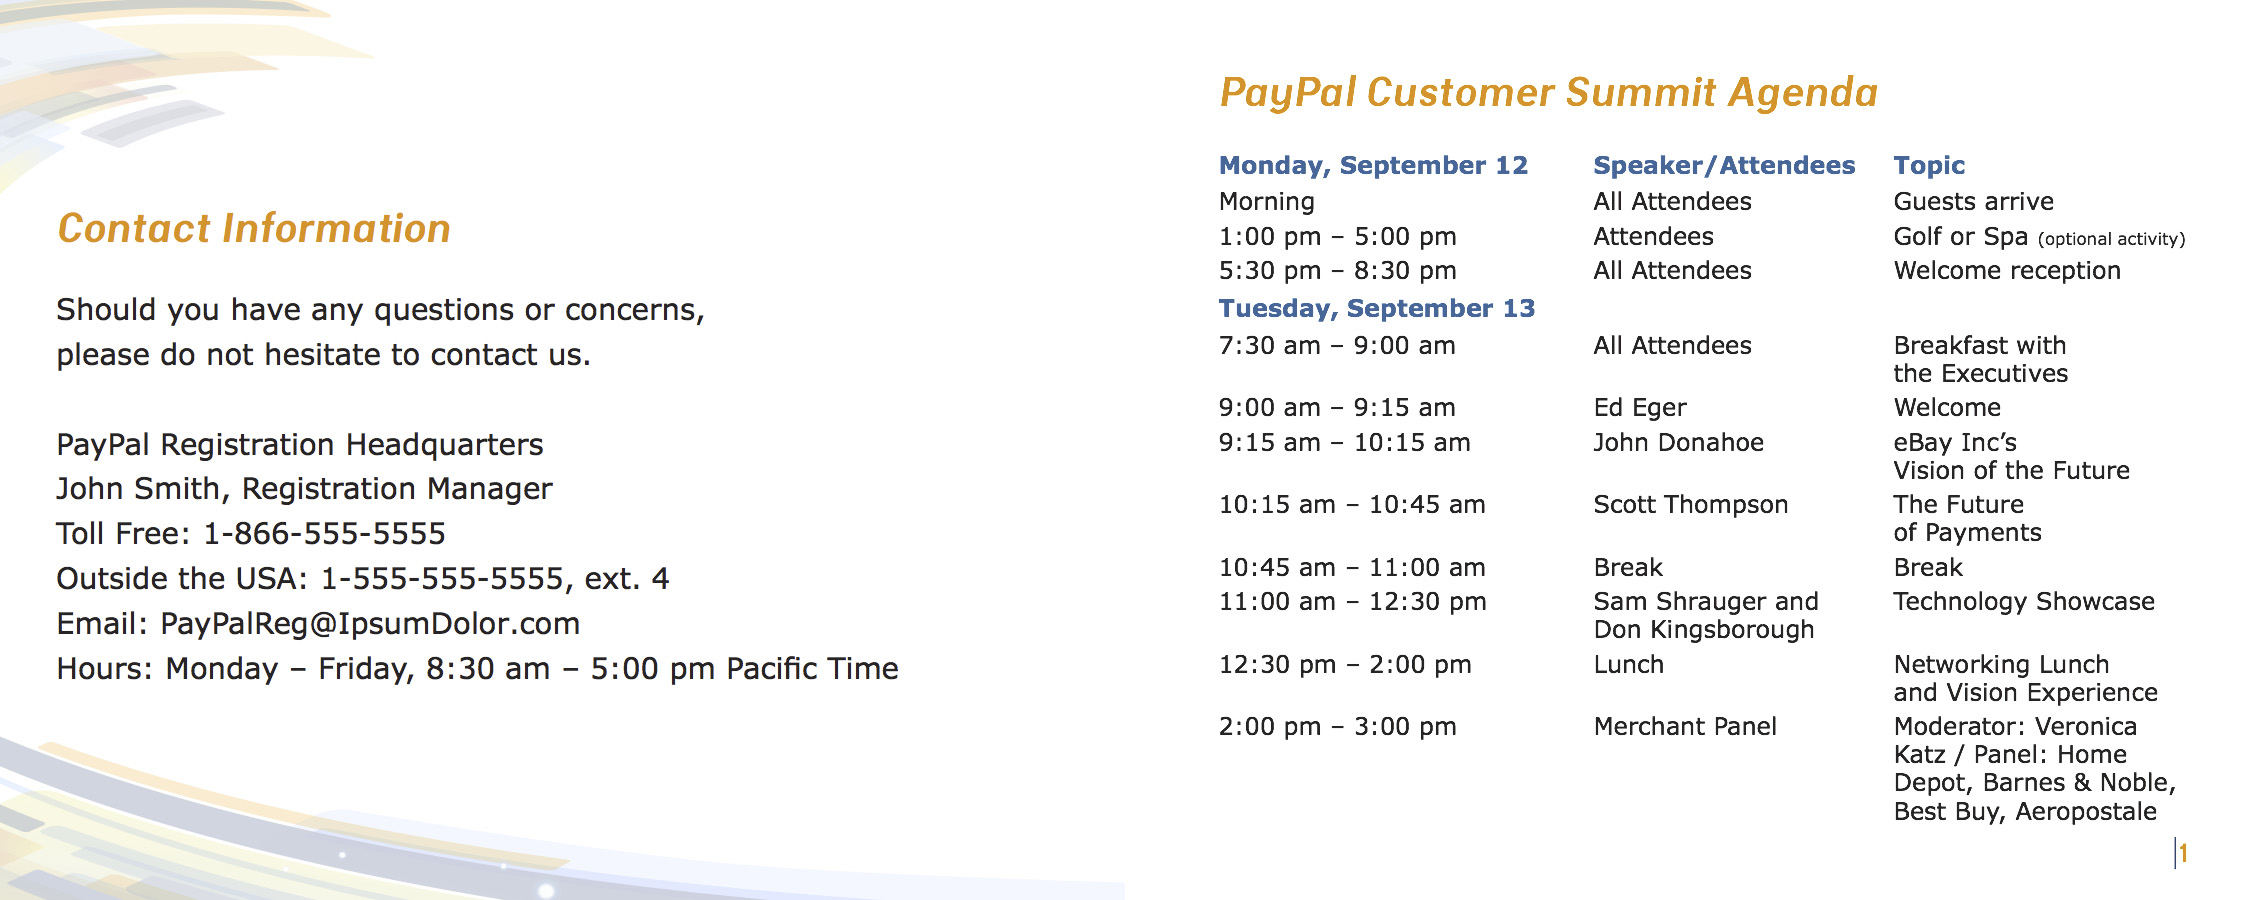 PayPal Customer Summit - Program of Events 4.jpg